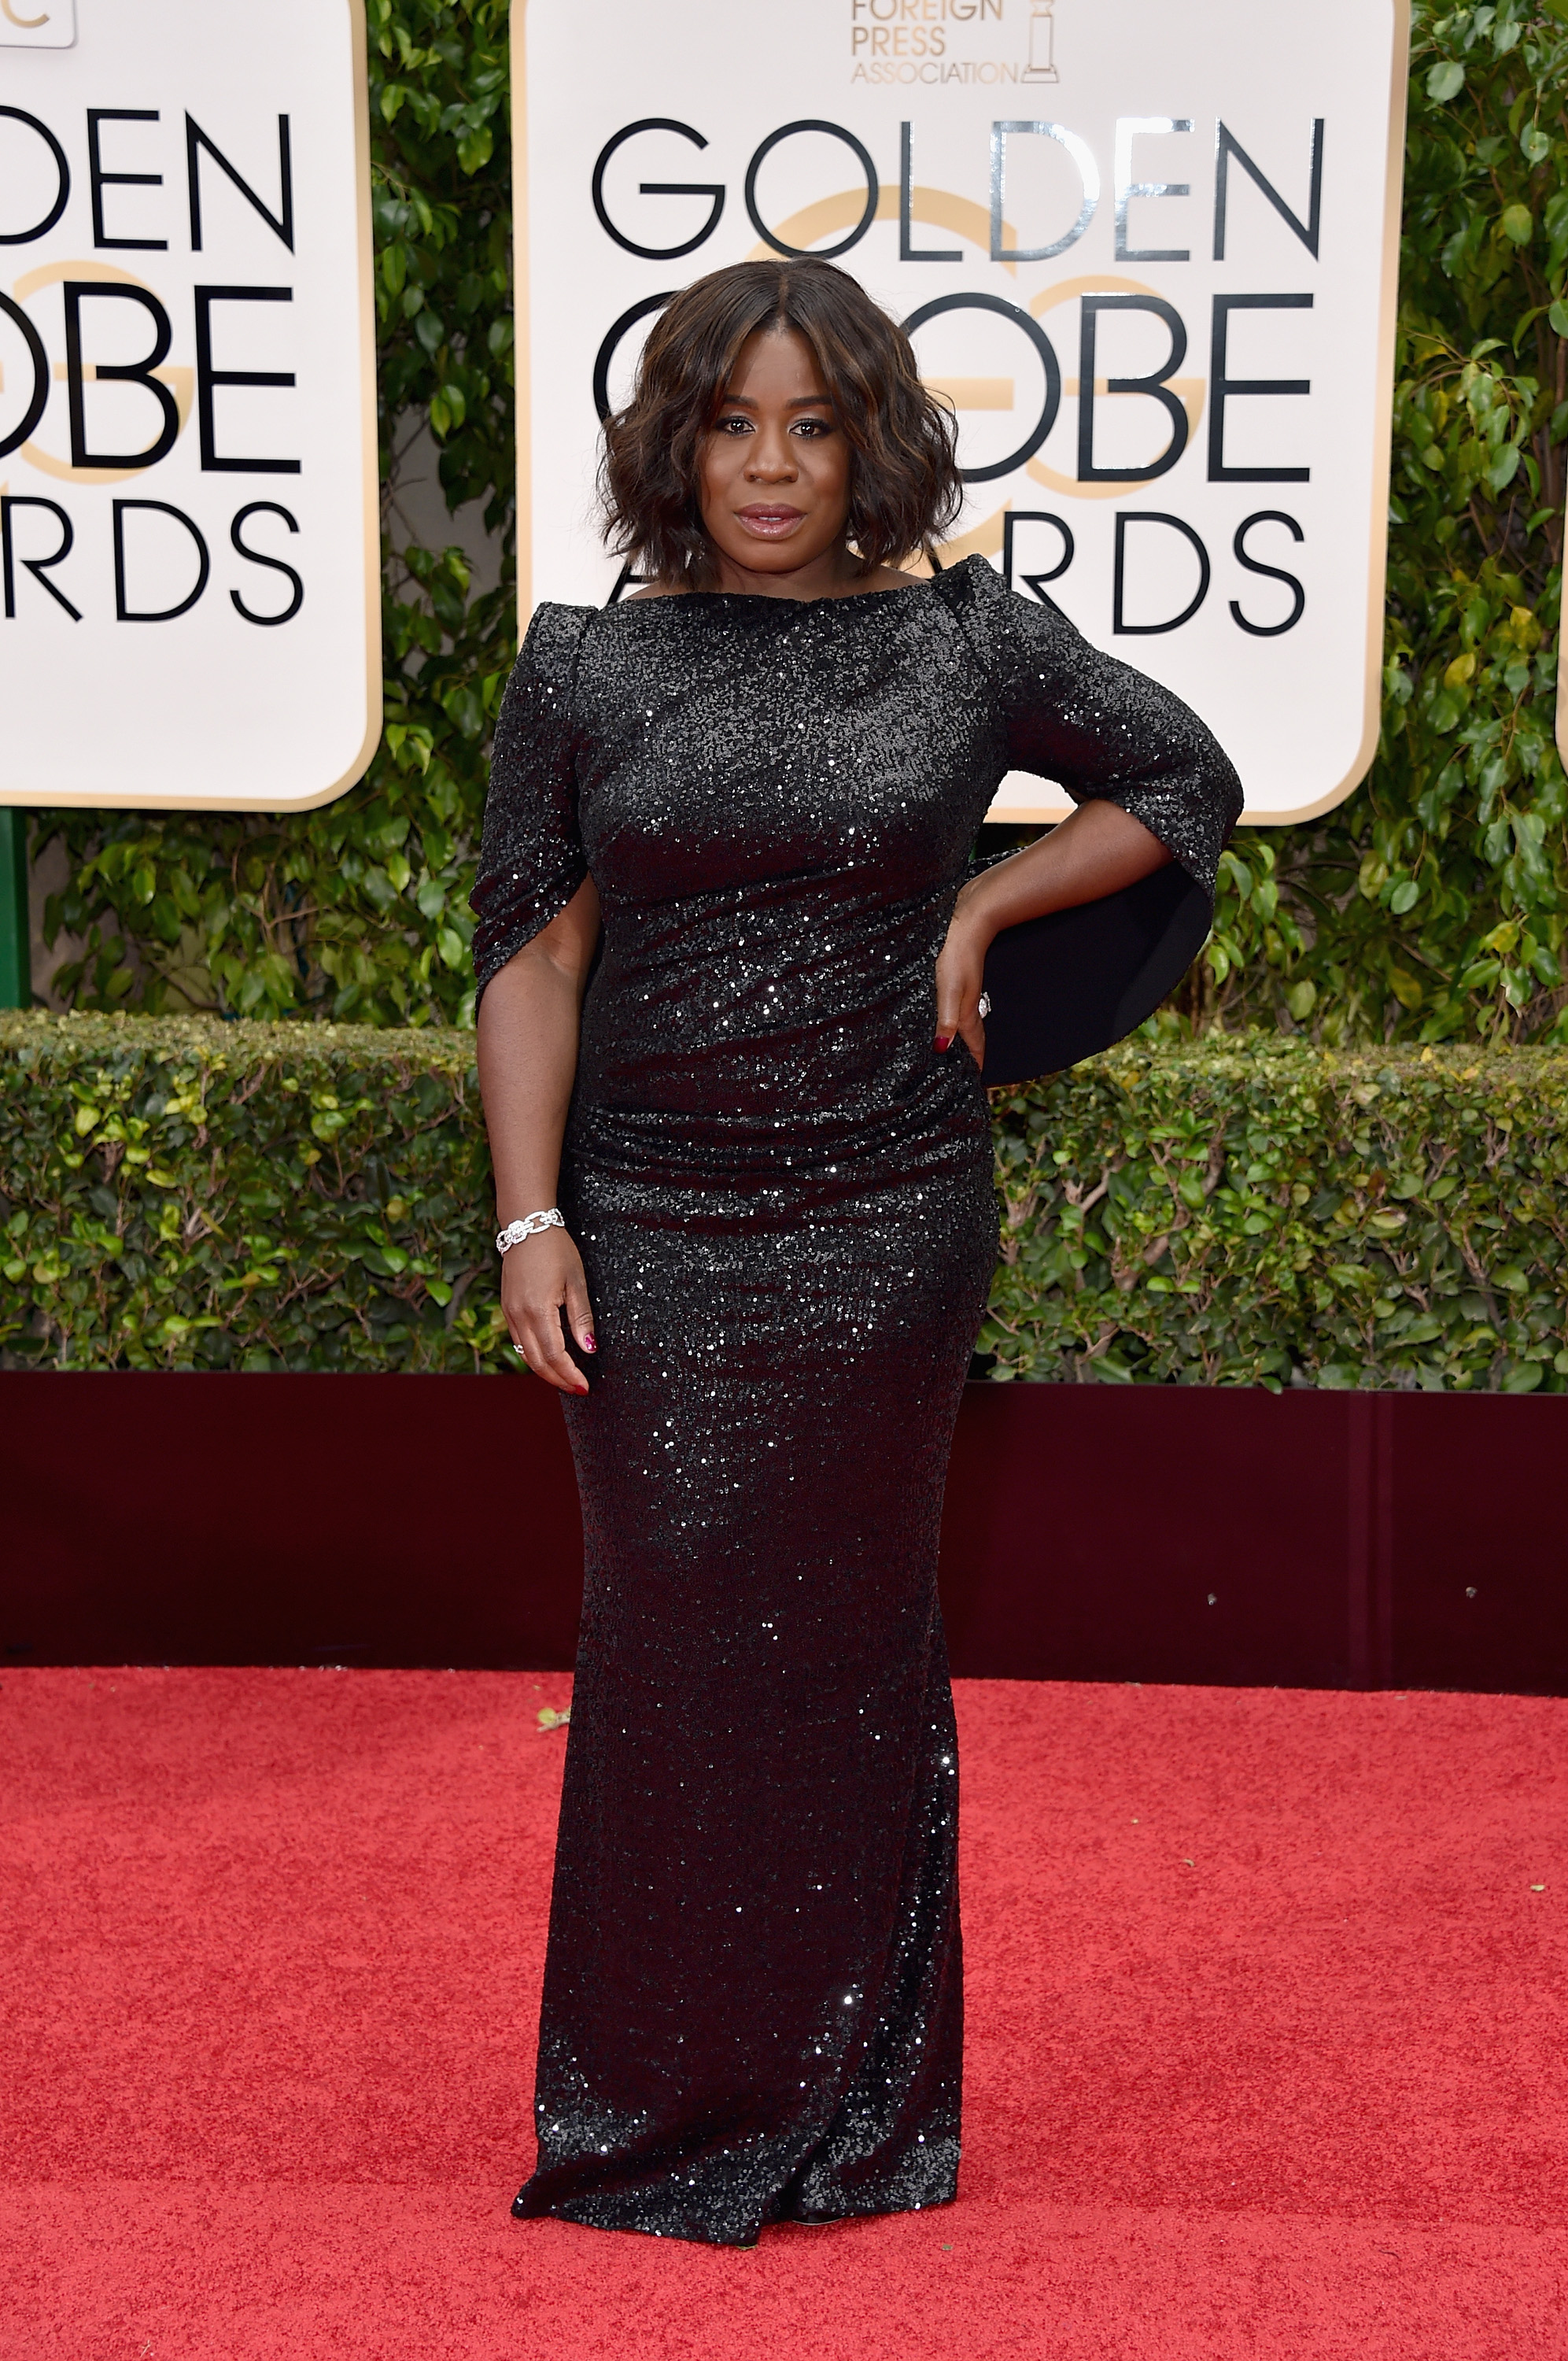 Uzo Aduba arrives to the 73rd Annual Golden Globe Awards on Jan. 10, 2016 in Beverly Hills.